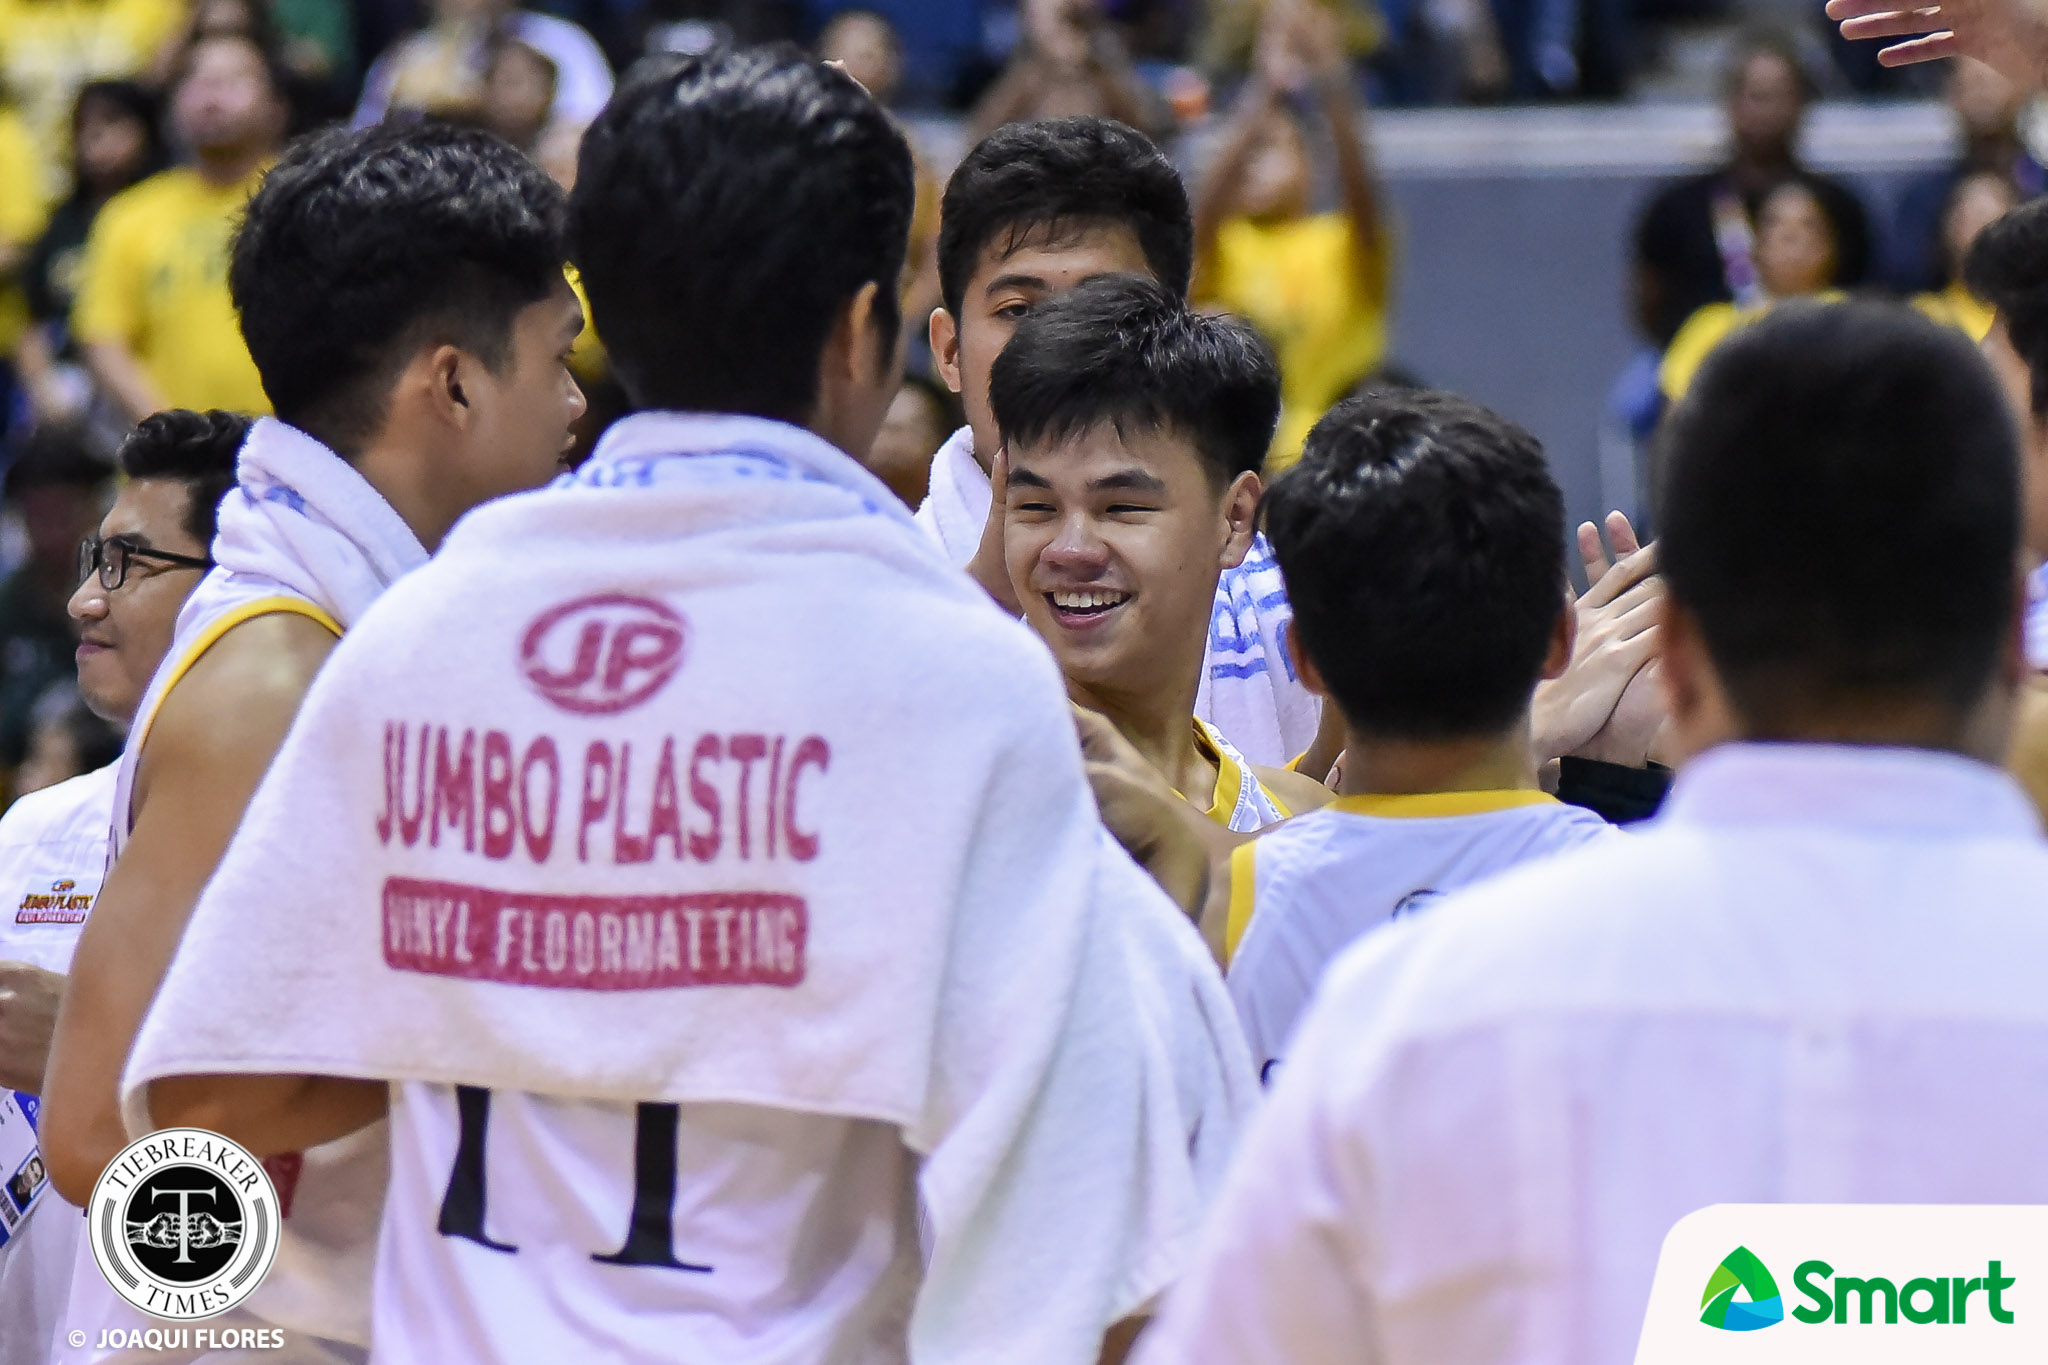 Tiebreaker Times Brent Paraiso provides spark for UST: 'We wanted it more' Basketball News UAAP UST  UST Men's Basketball UAAP Season 82 Men's Basketball UAAP Season 82 Brent Paraiso Aldin Ayo